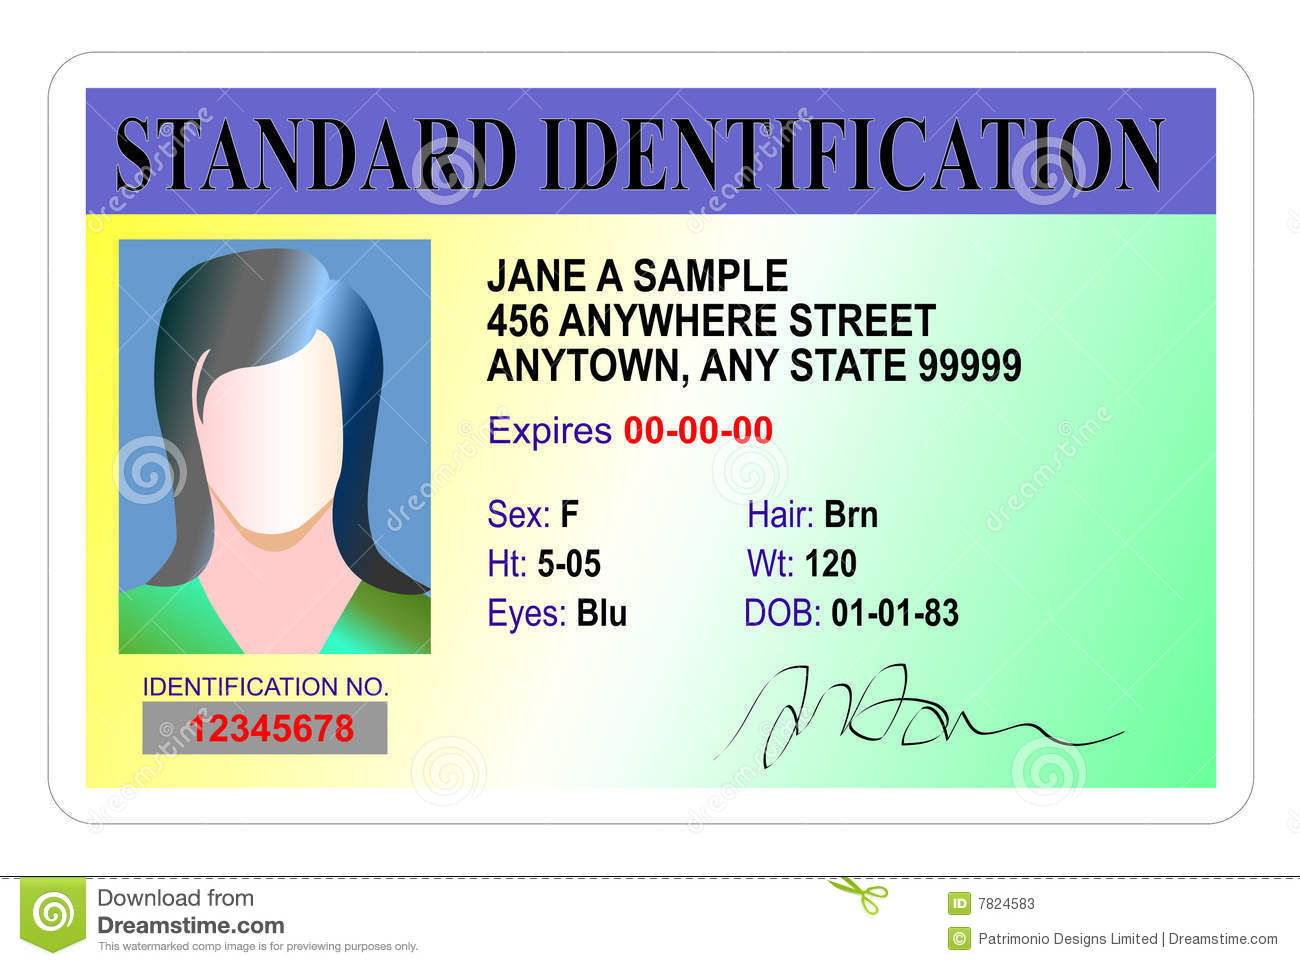 Student Photo Id Card To Travel In United States